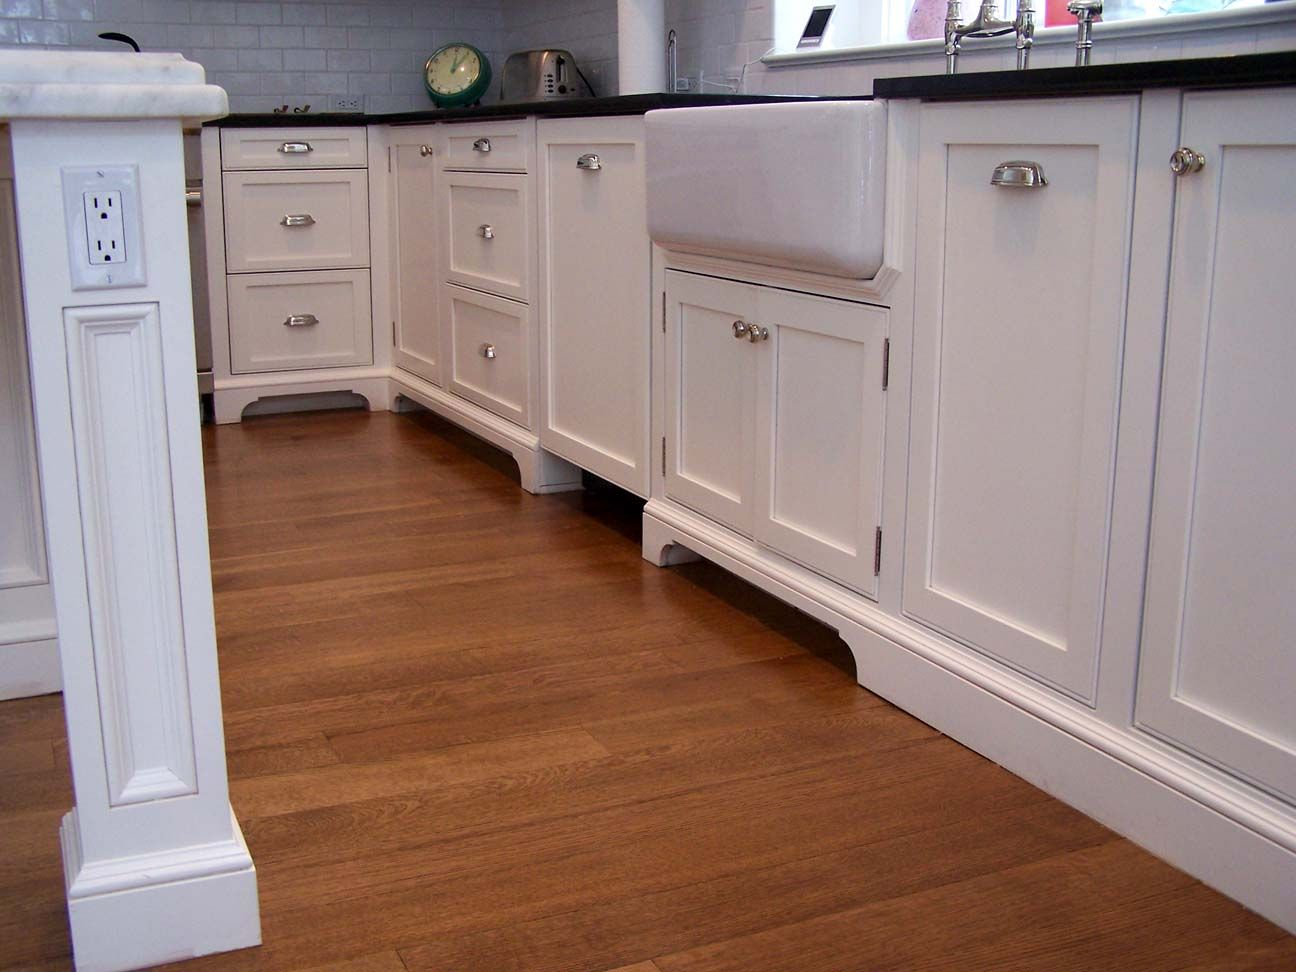 kitchen-sink-base-cabinets